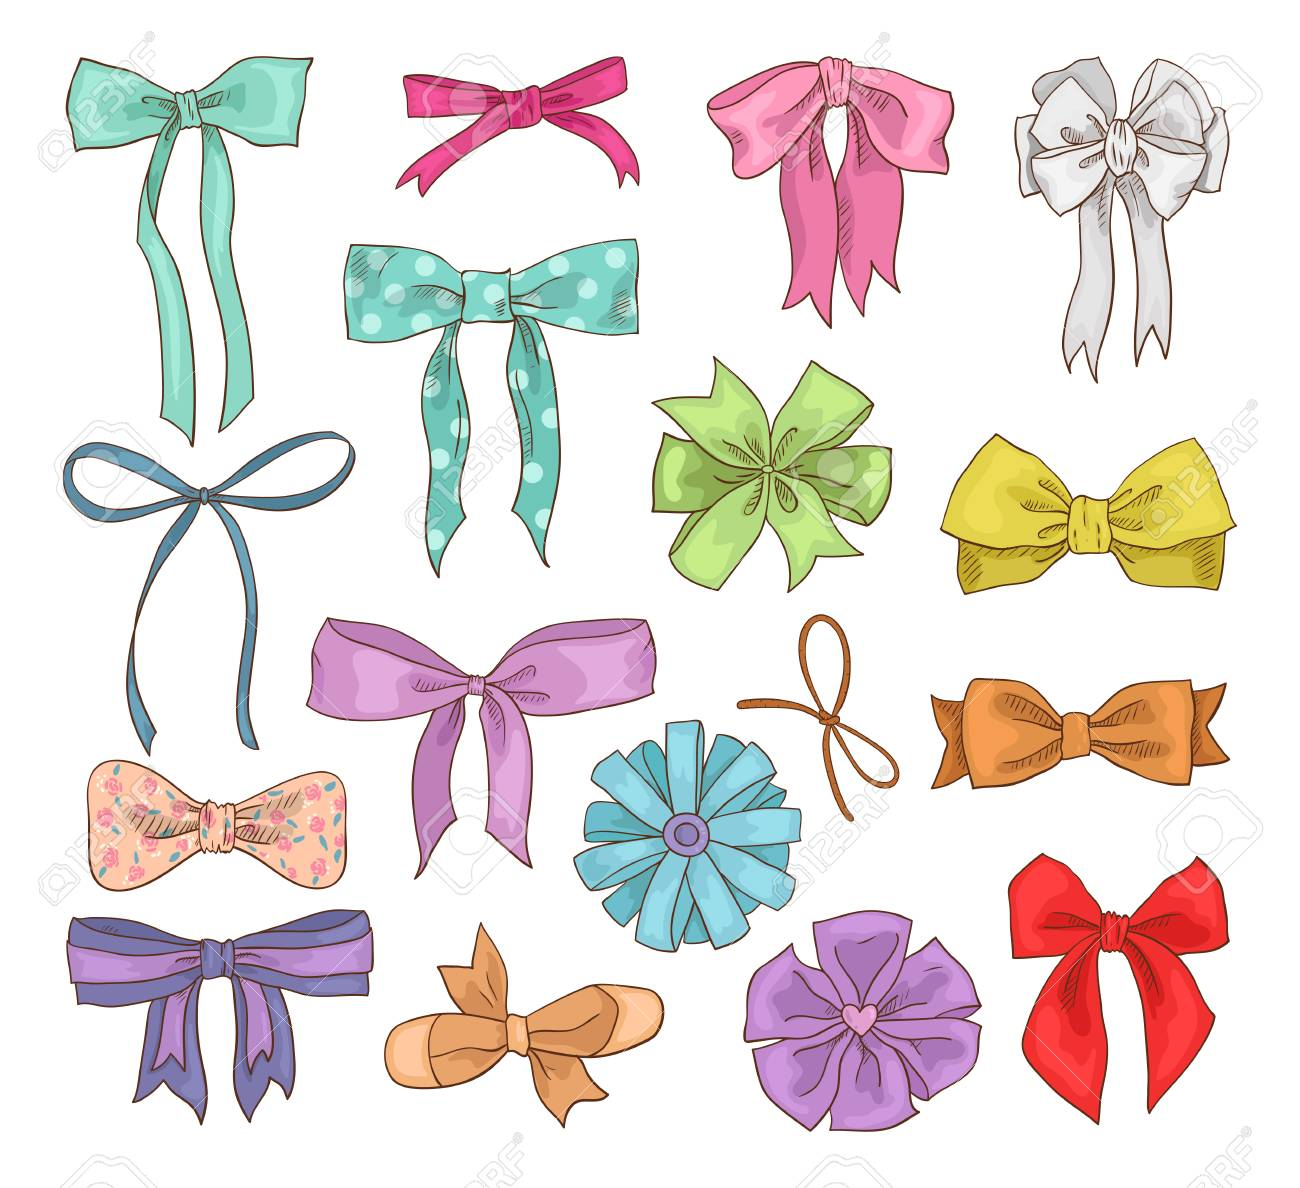 1cb0cb3cca87c Girls bow vector girlish bow knot or girly ribbon on hair or..